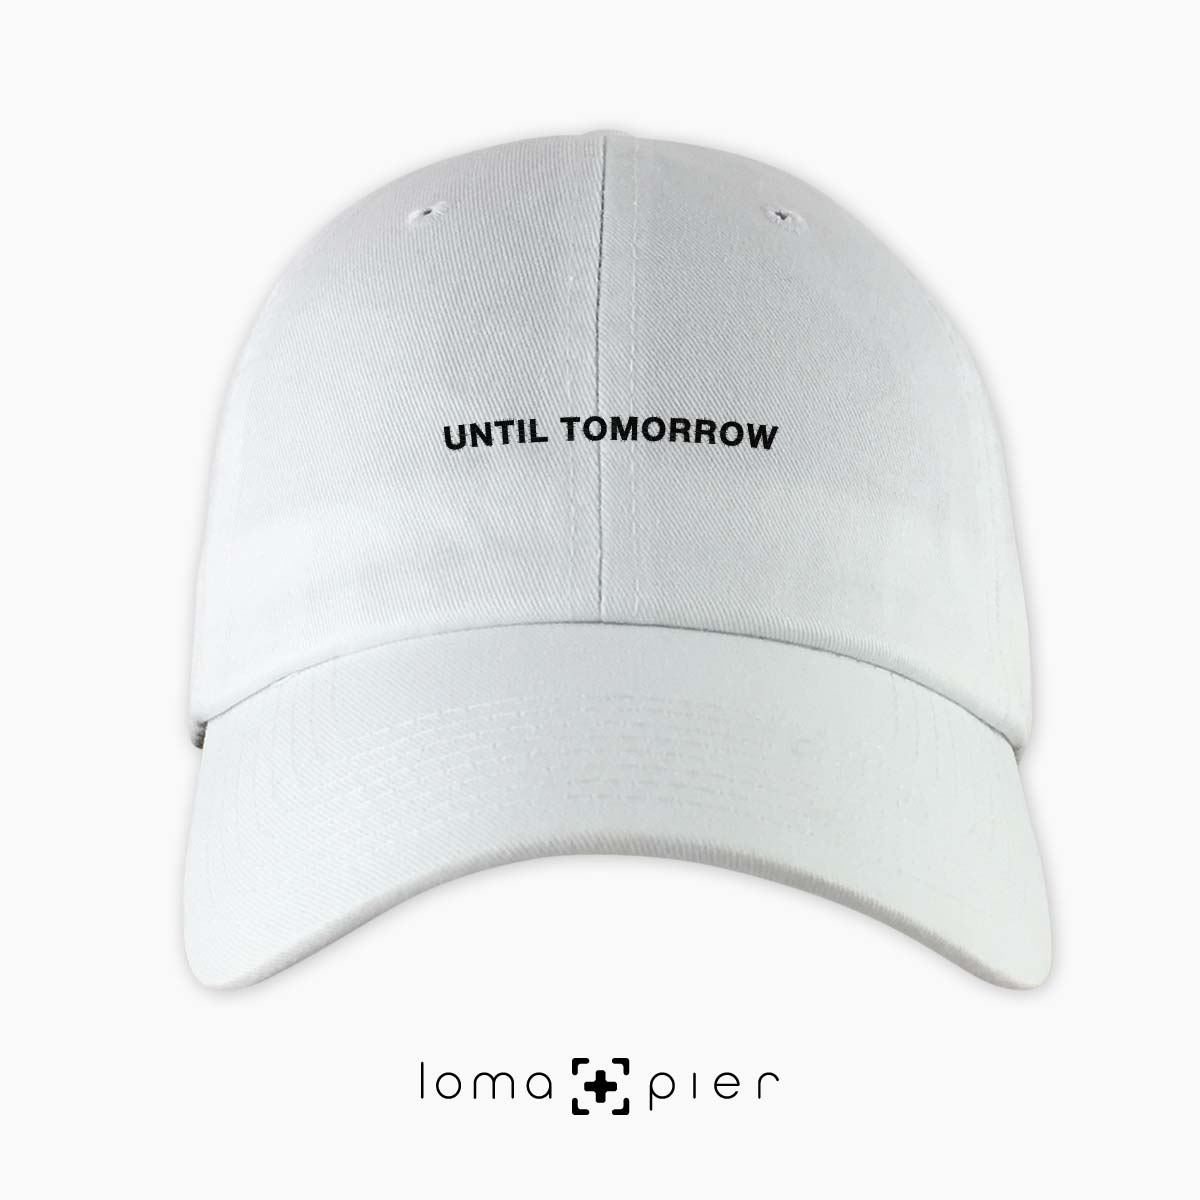 UNTIL TOMORROW trending instagram hat by loma and pier hat shop